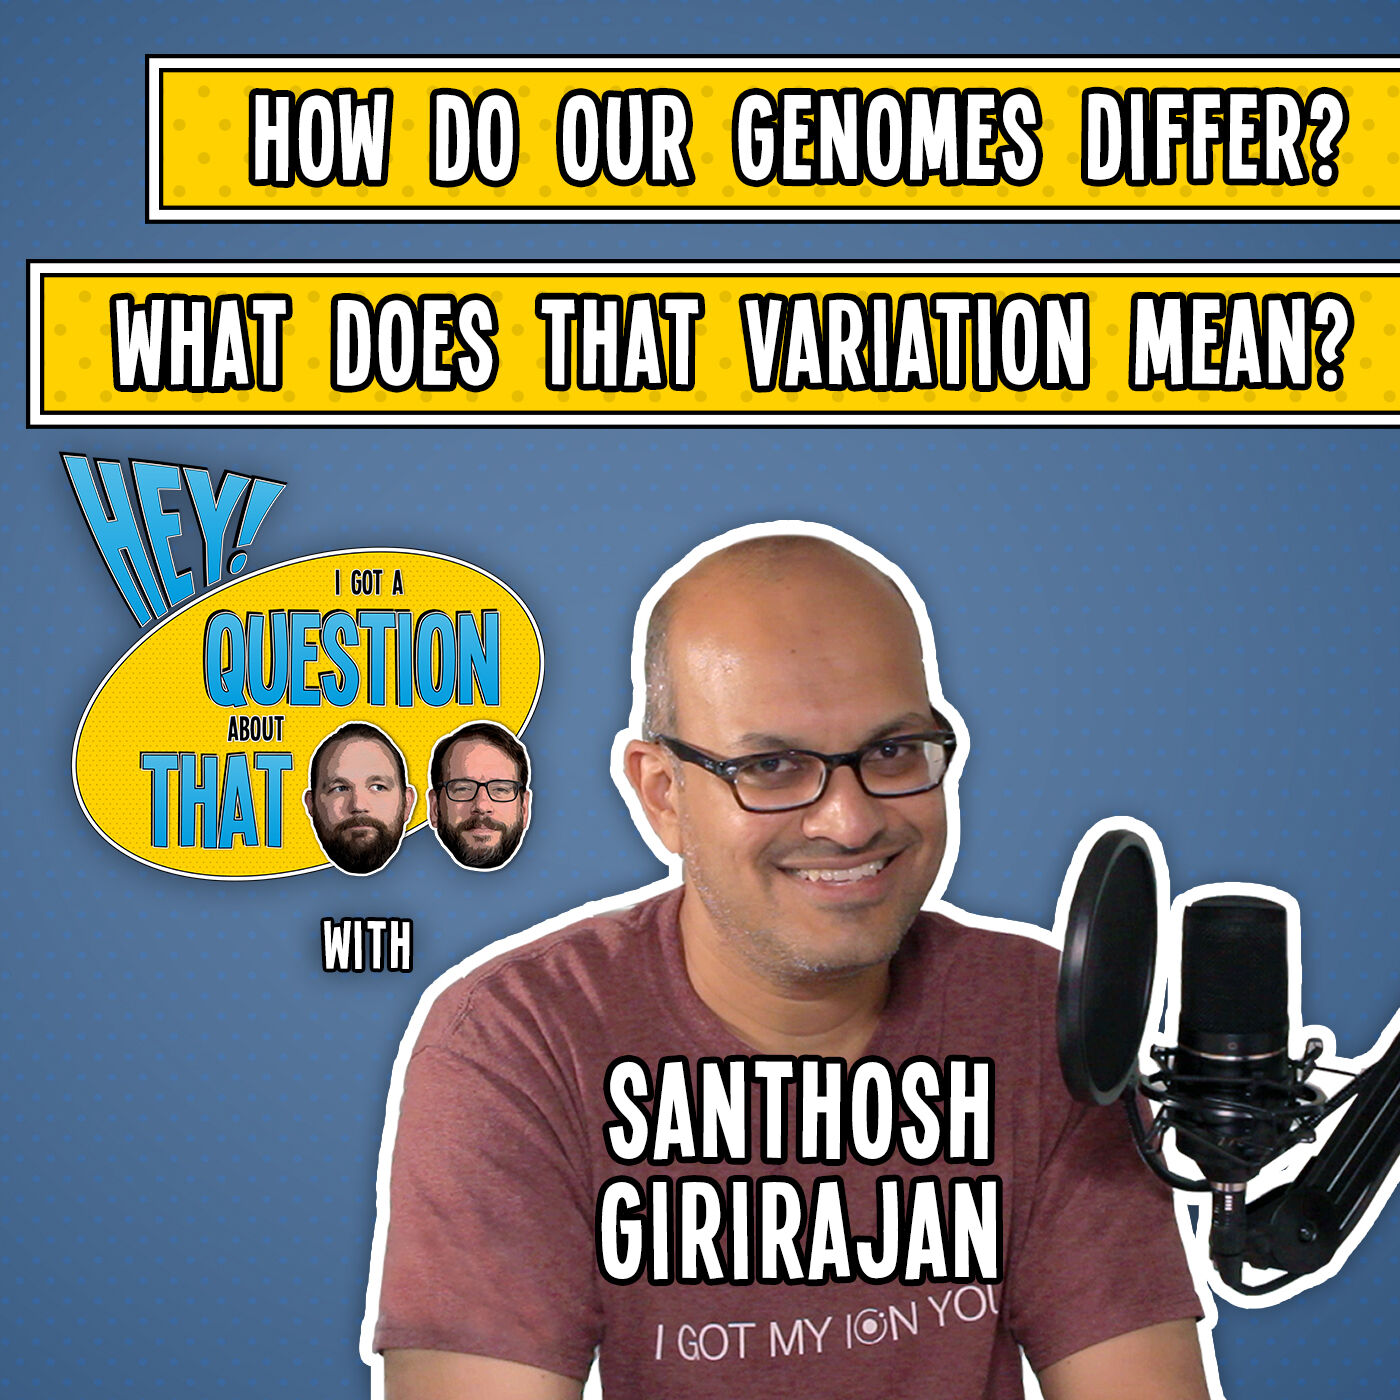 How Do Our Genomes Differ? What Does That Variation Mean?